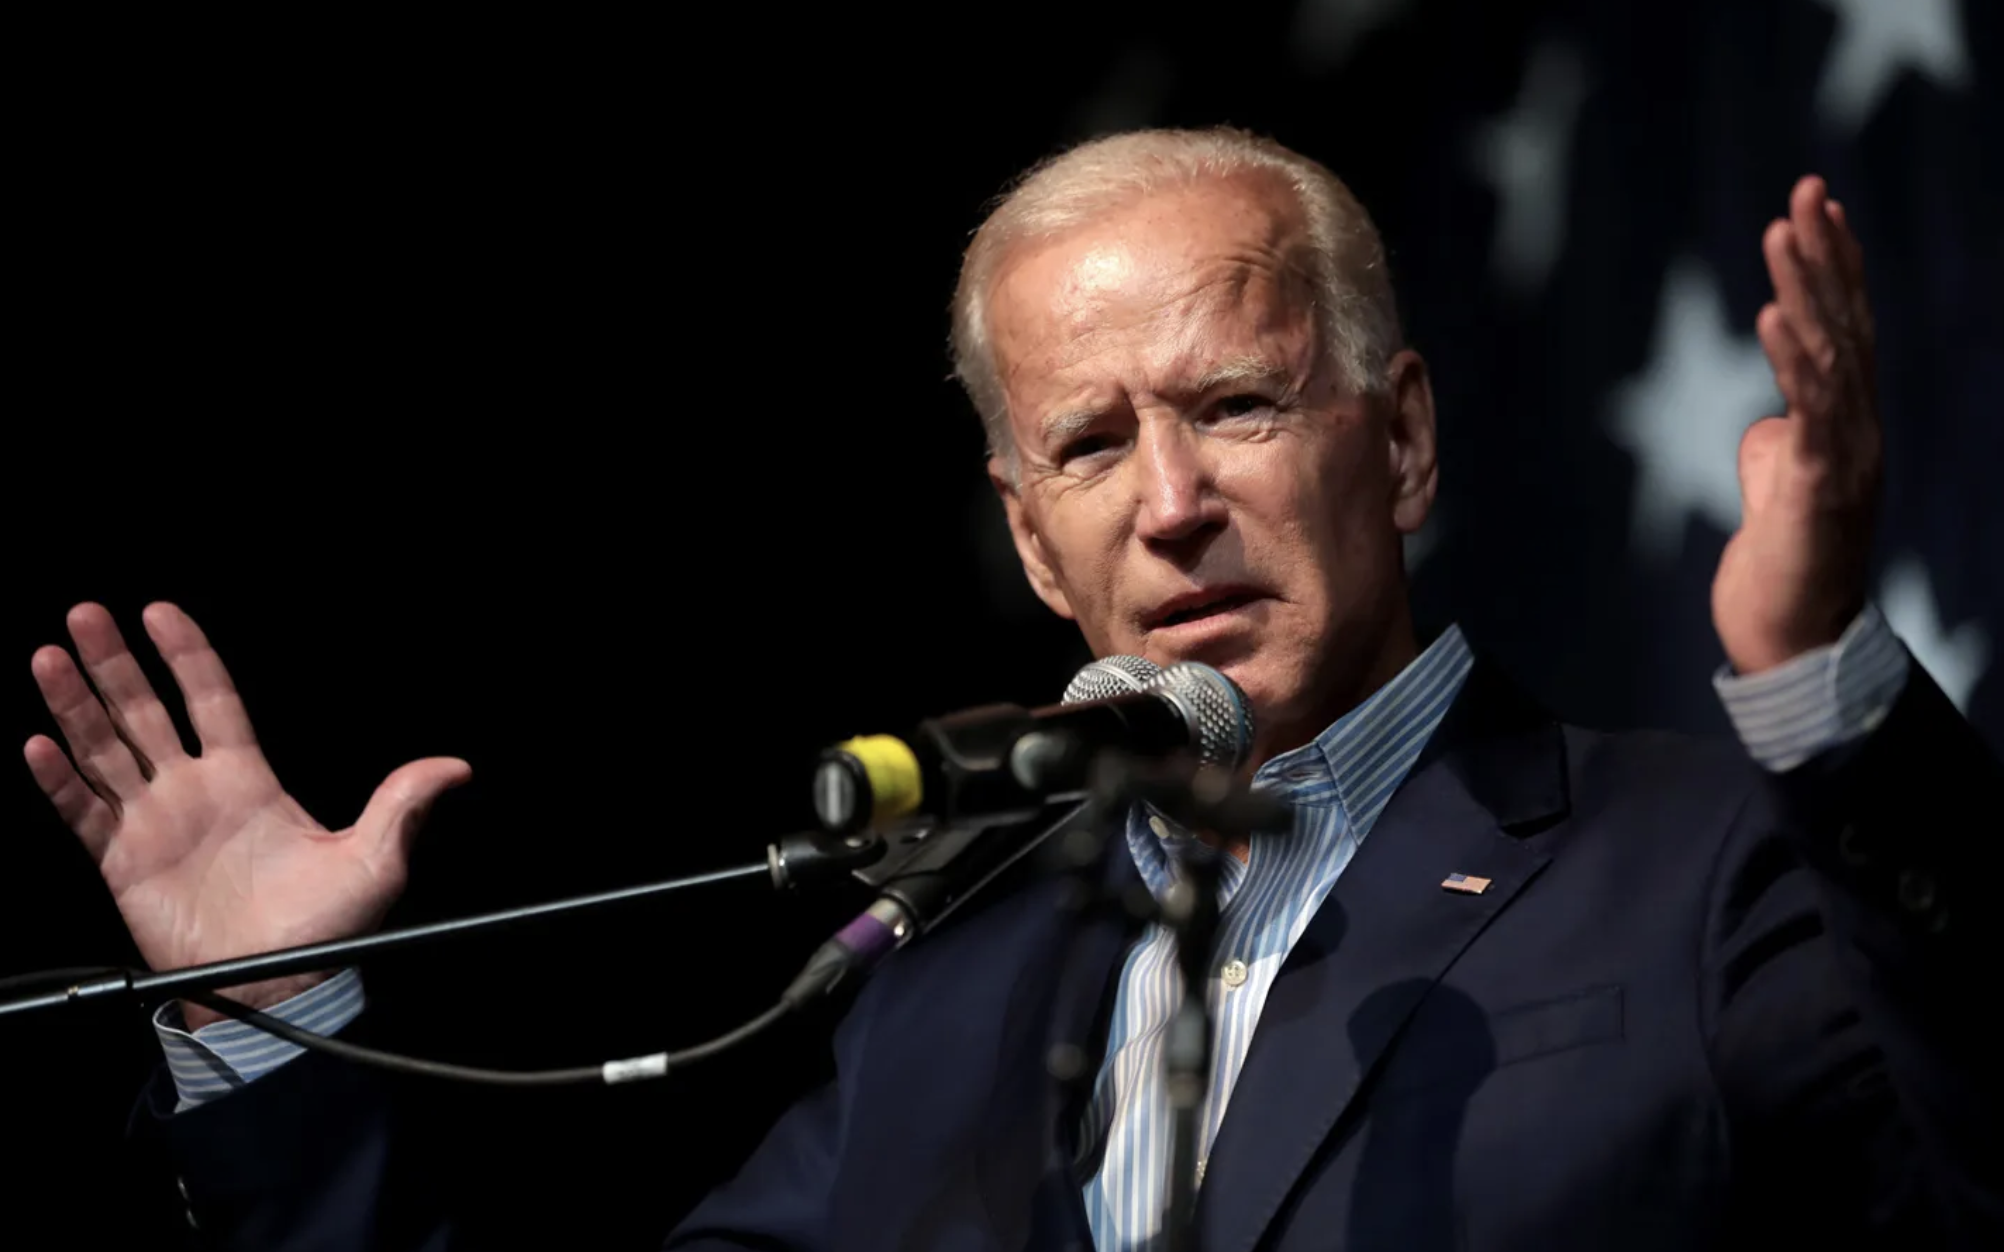 Biden Urged by 145 Groups to Ban Fossil Fuel Representatives in Campaign & Administration